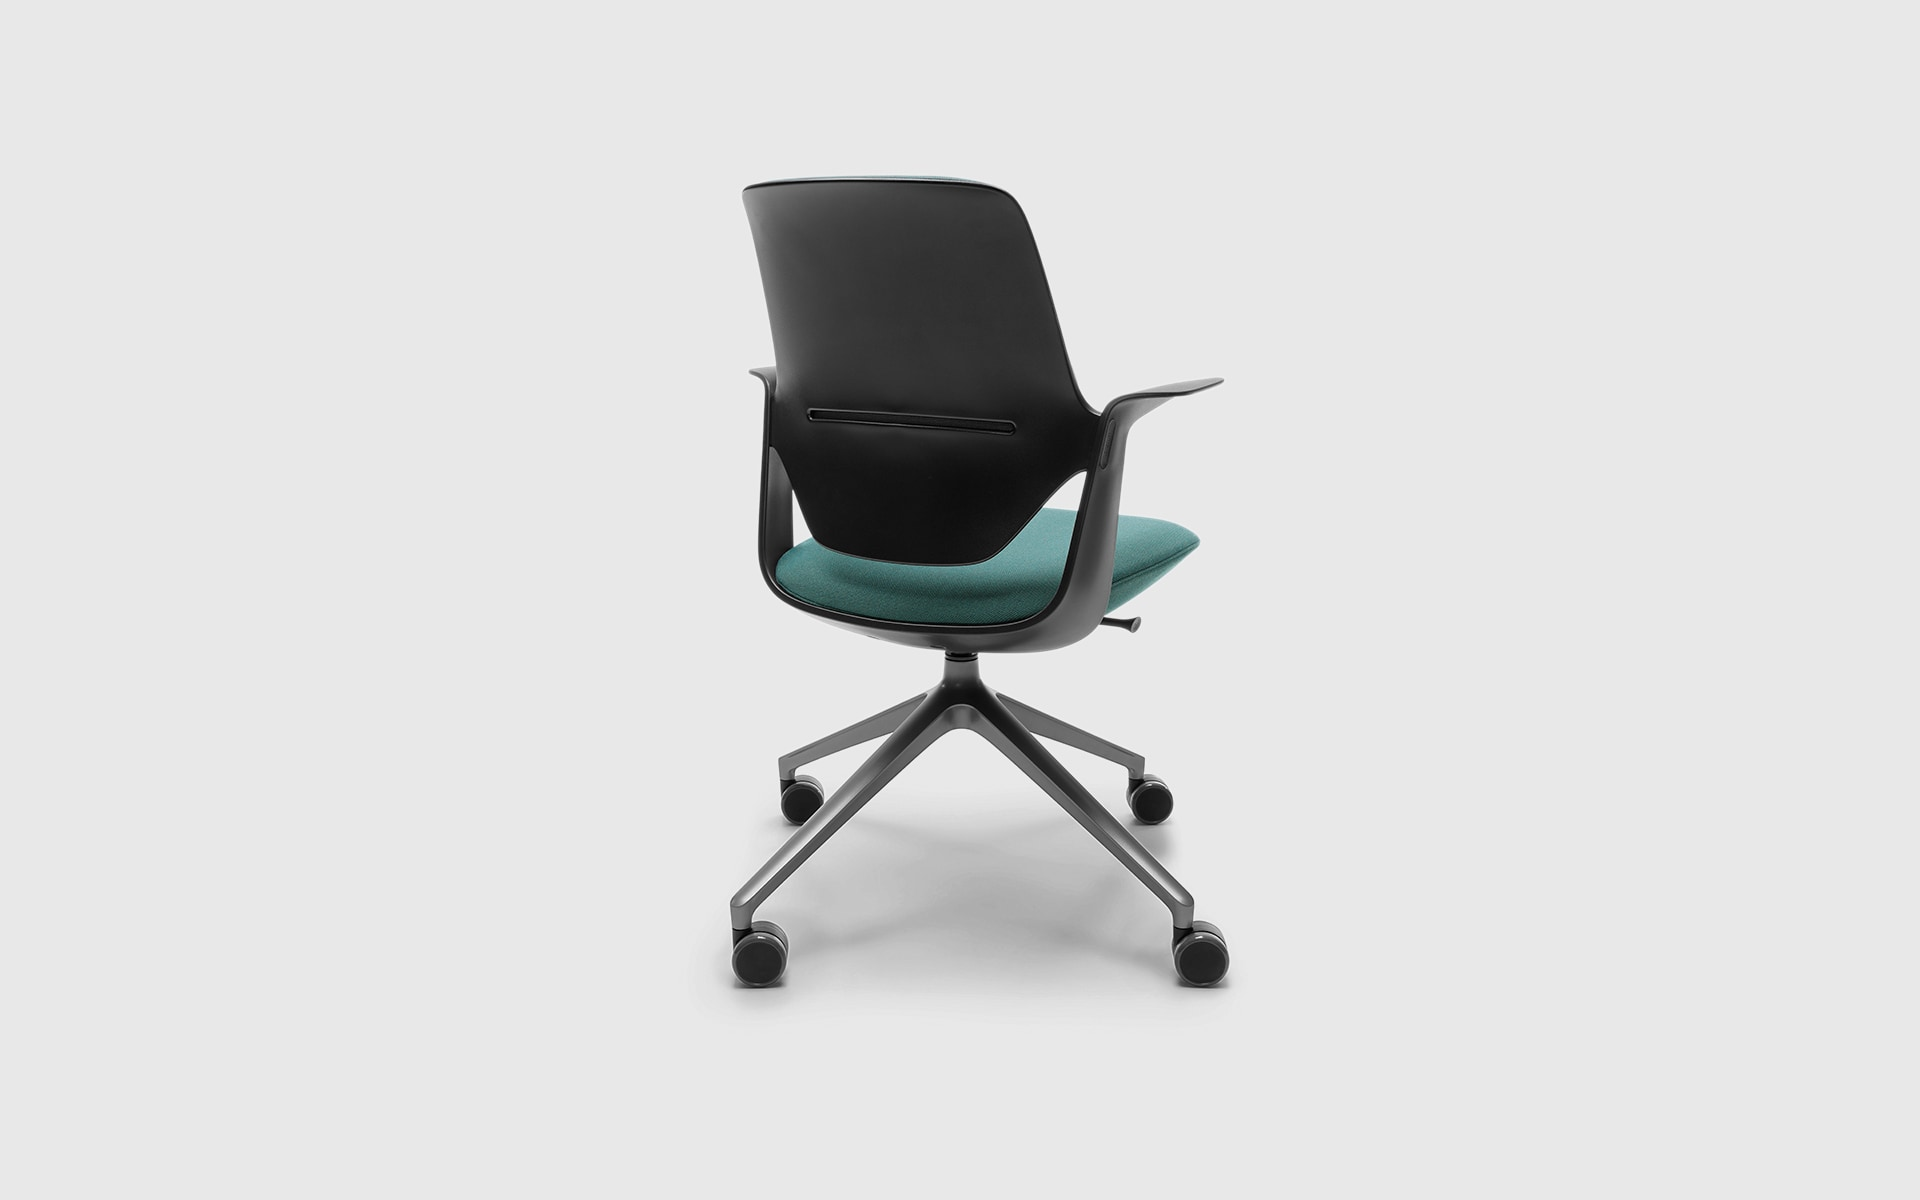 The Profim Trillo Pro office chair by ITO Design in black with green upholstery